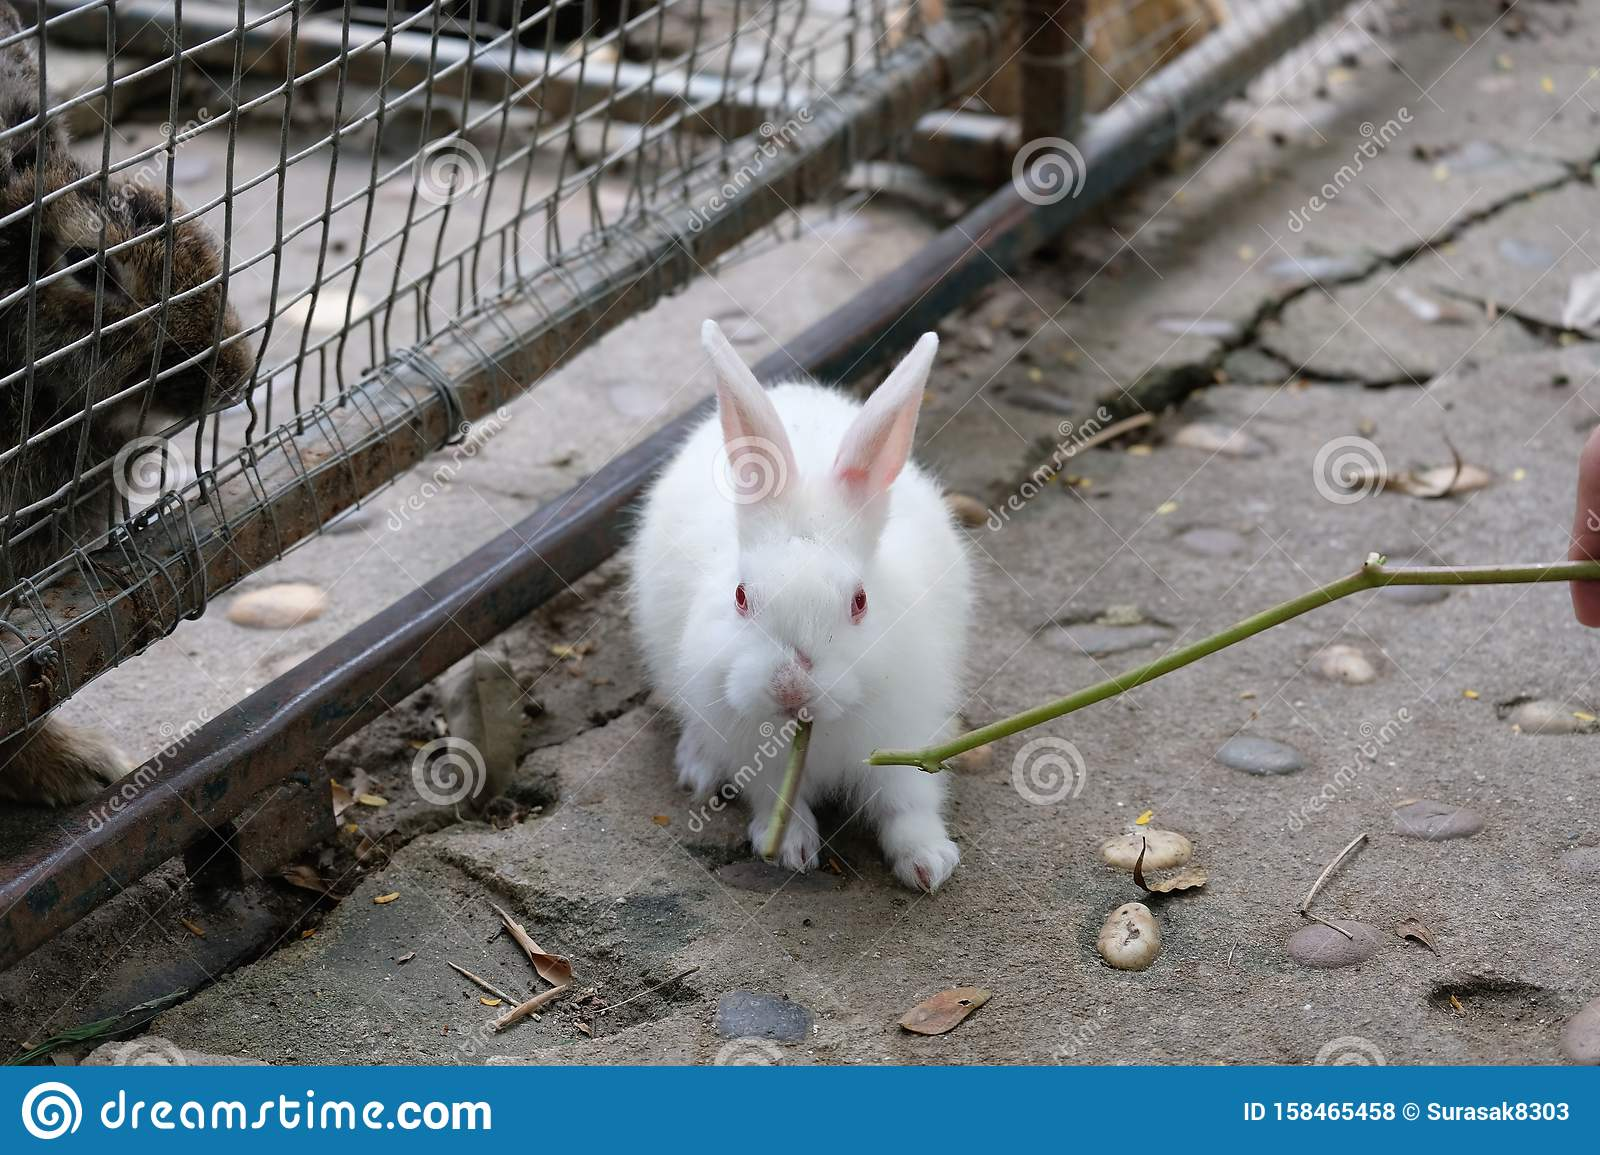 A little white rabbit in a zoo